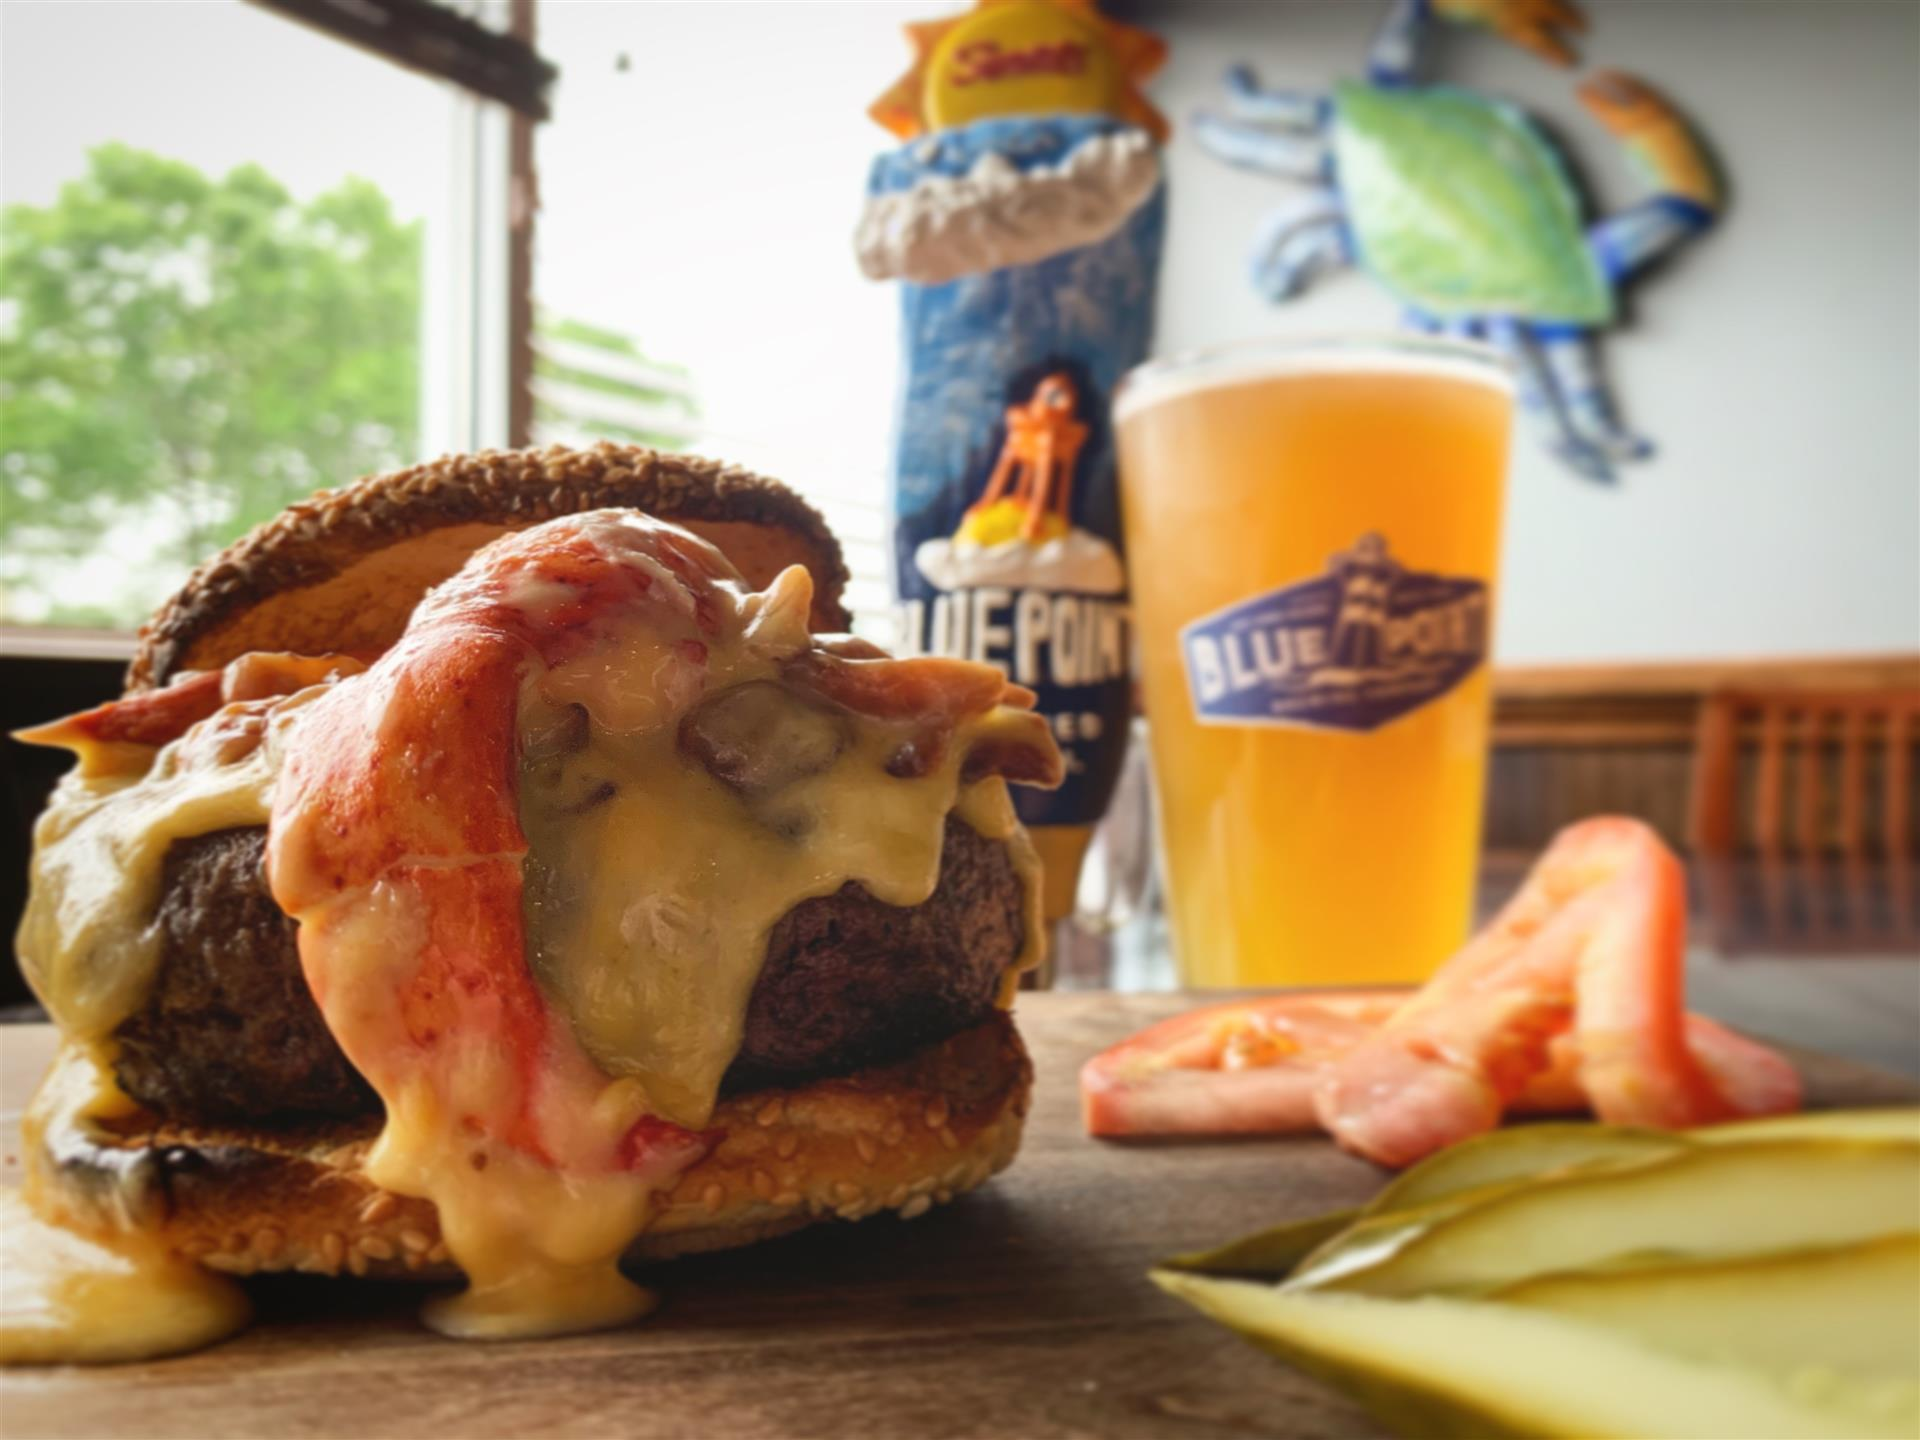 burger topped with lobster and melted cheese. pint of a summer ale on the side.